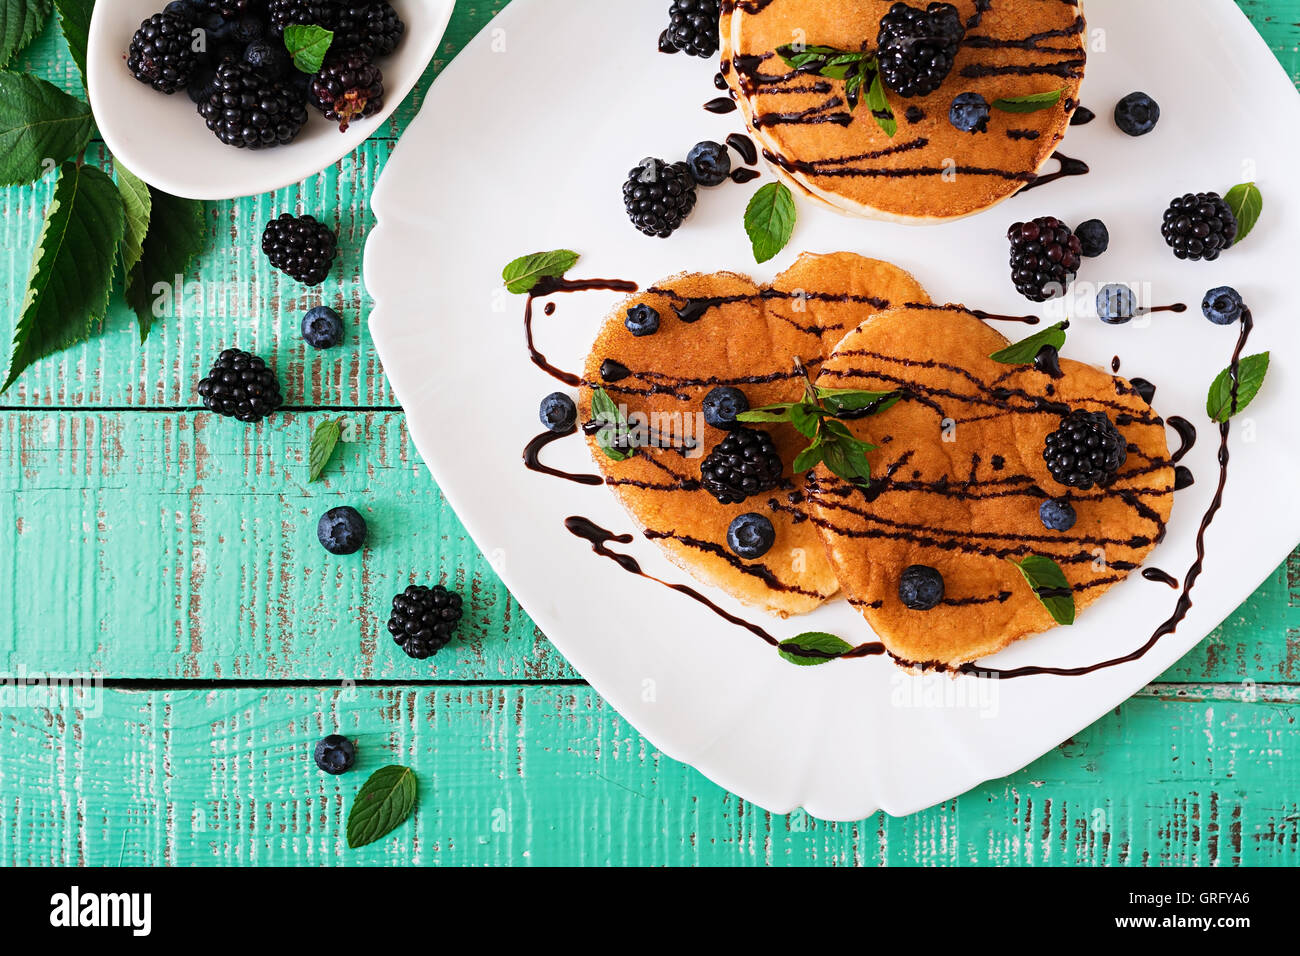 Delicious pancakes with blackberries and chocolate. Top view - Stock Image